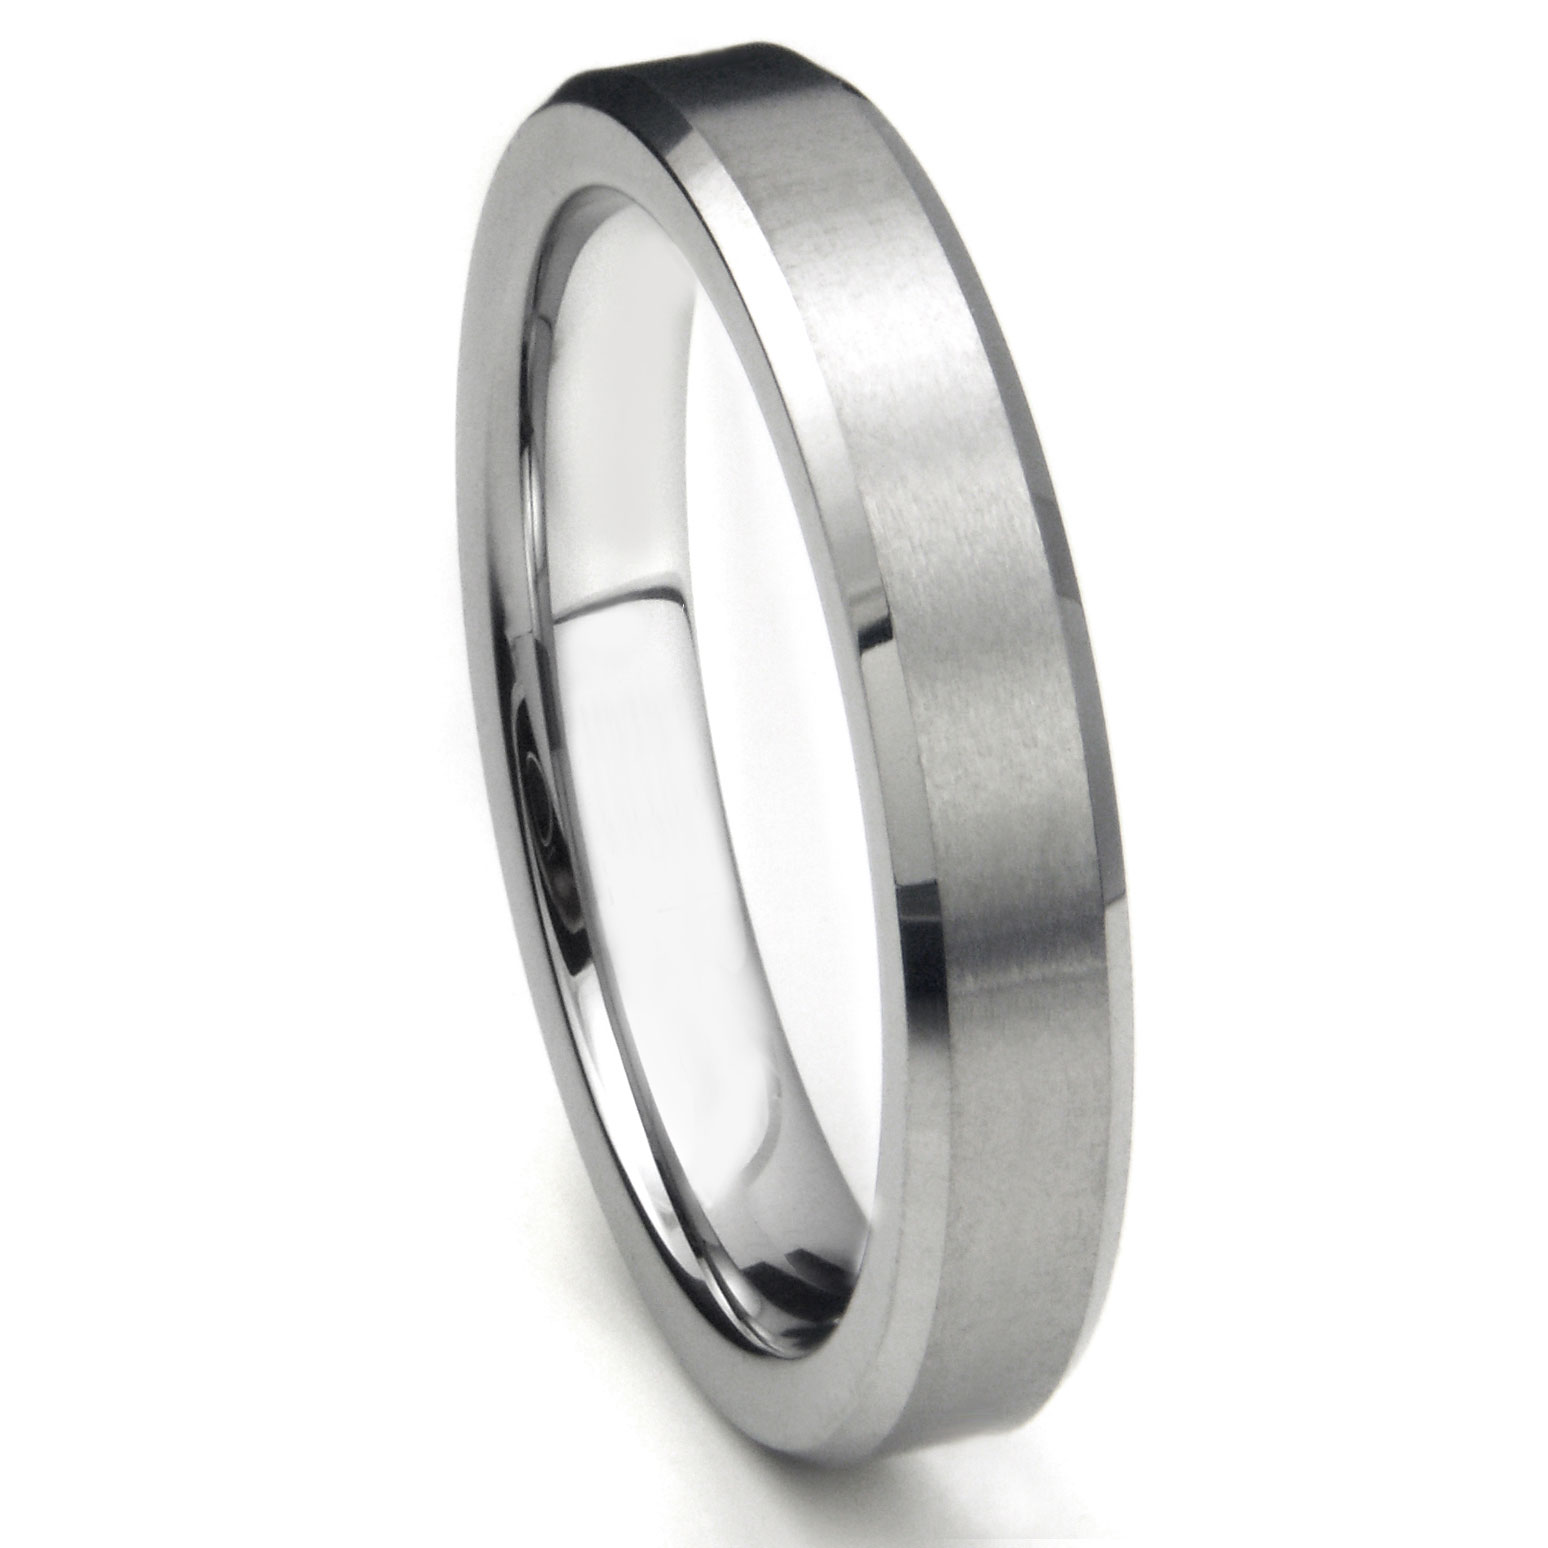 tungsten carbide 5mm beveled wedding band w/ brushed center